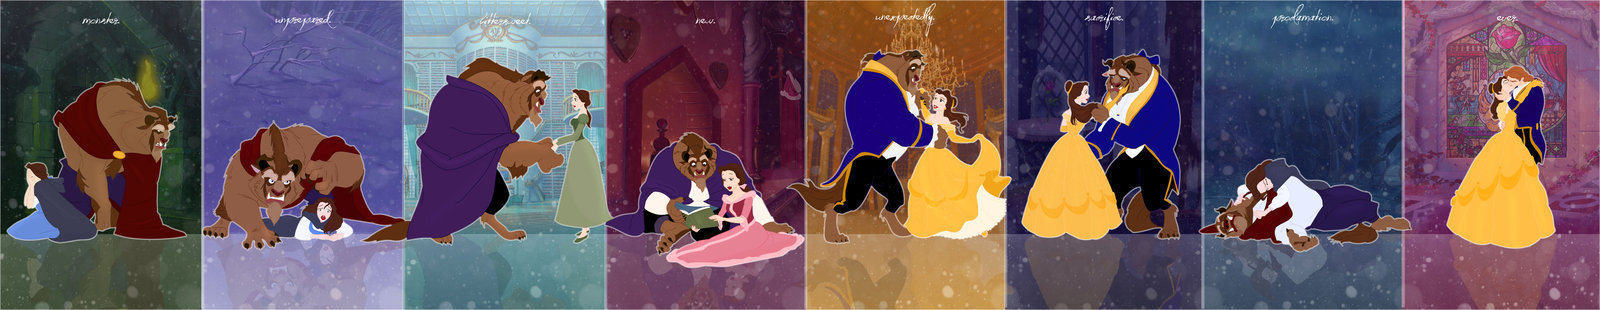 Beauty and the Beast - Ever